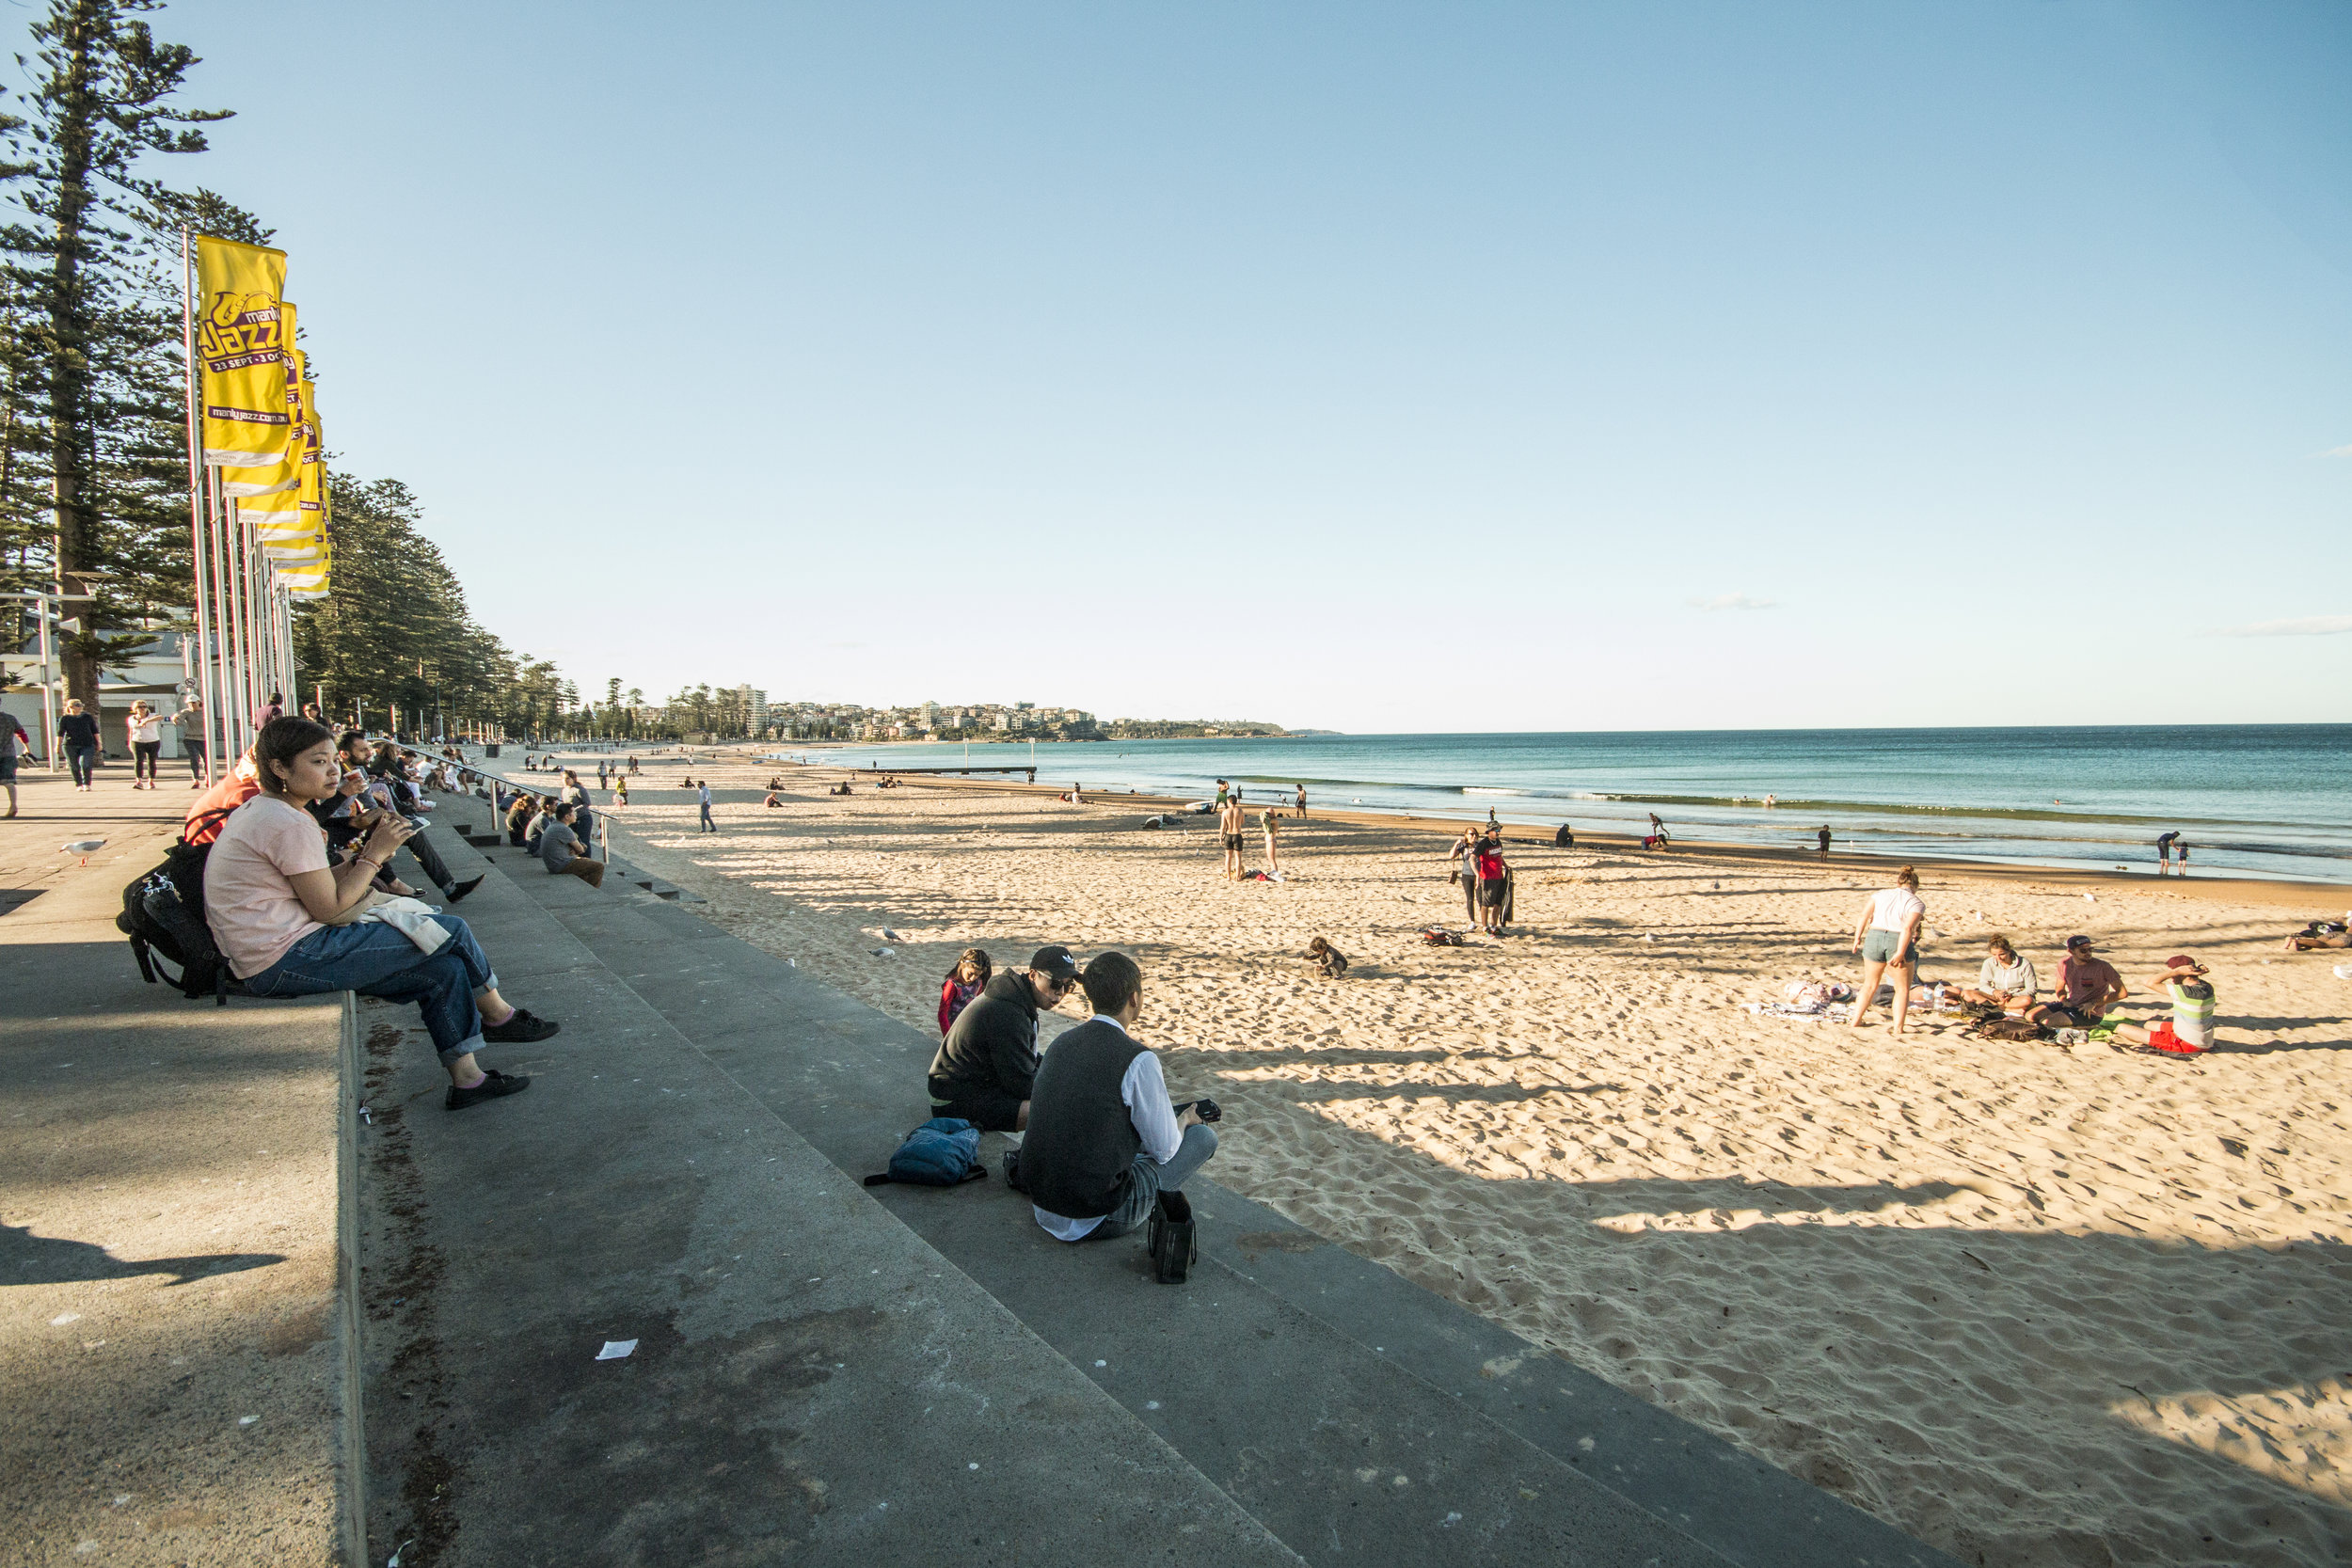 The Manly beach